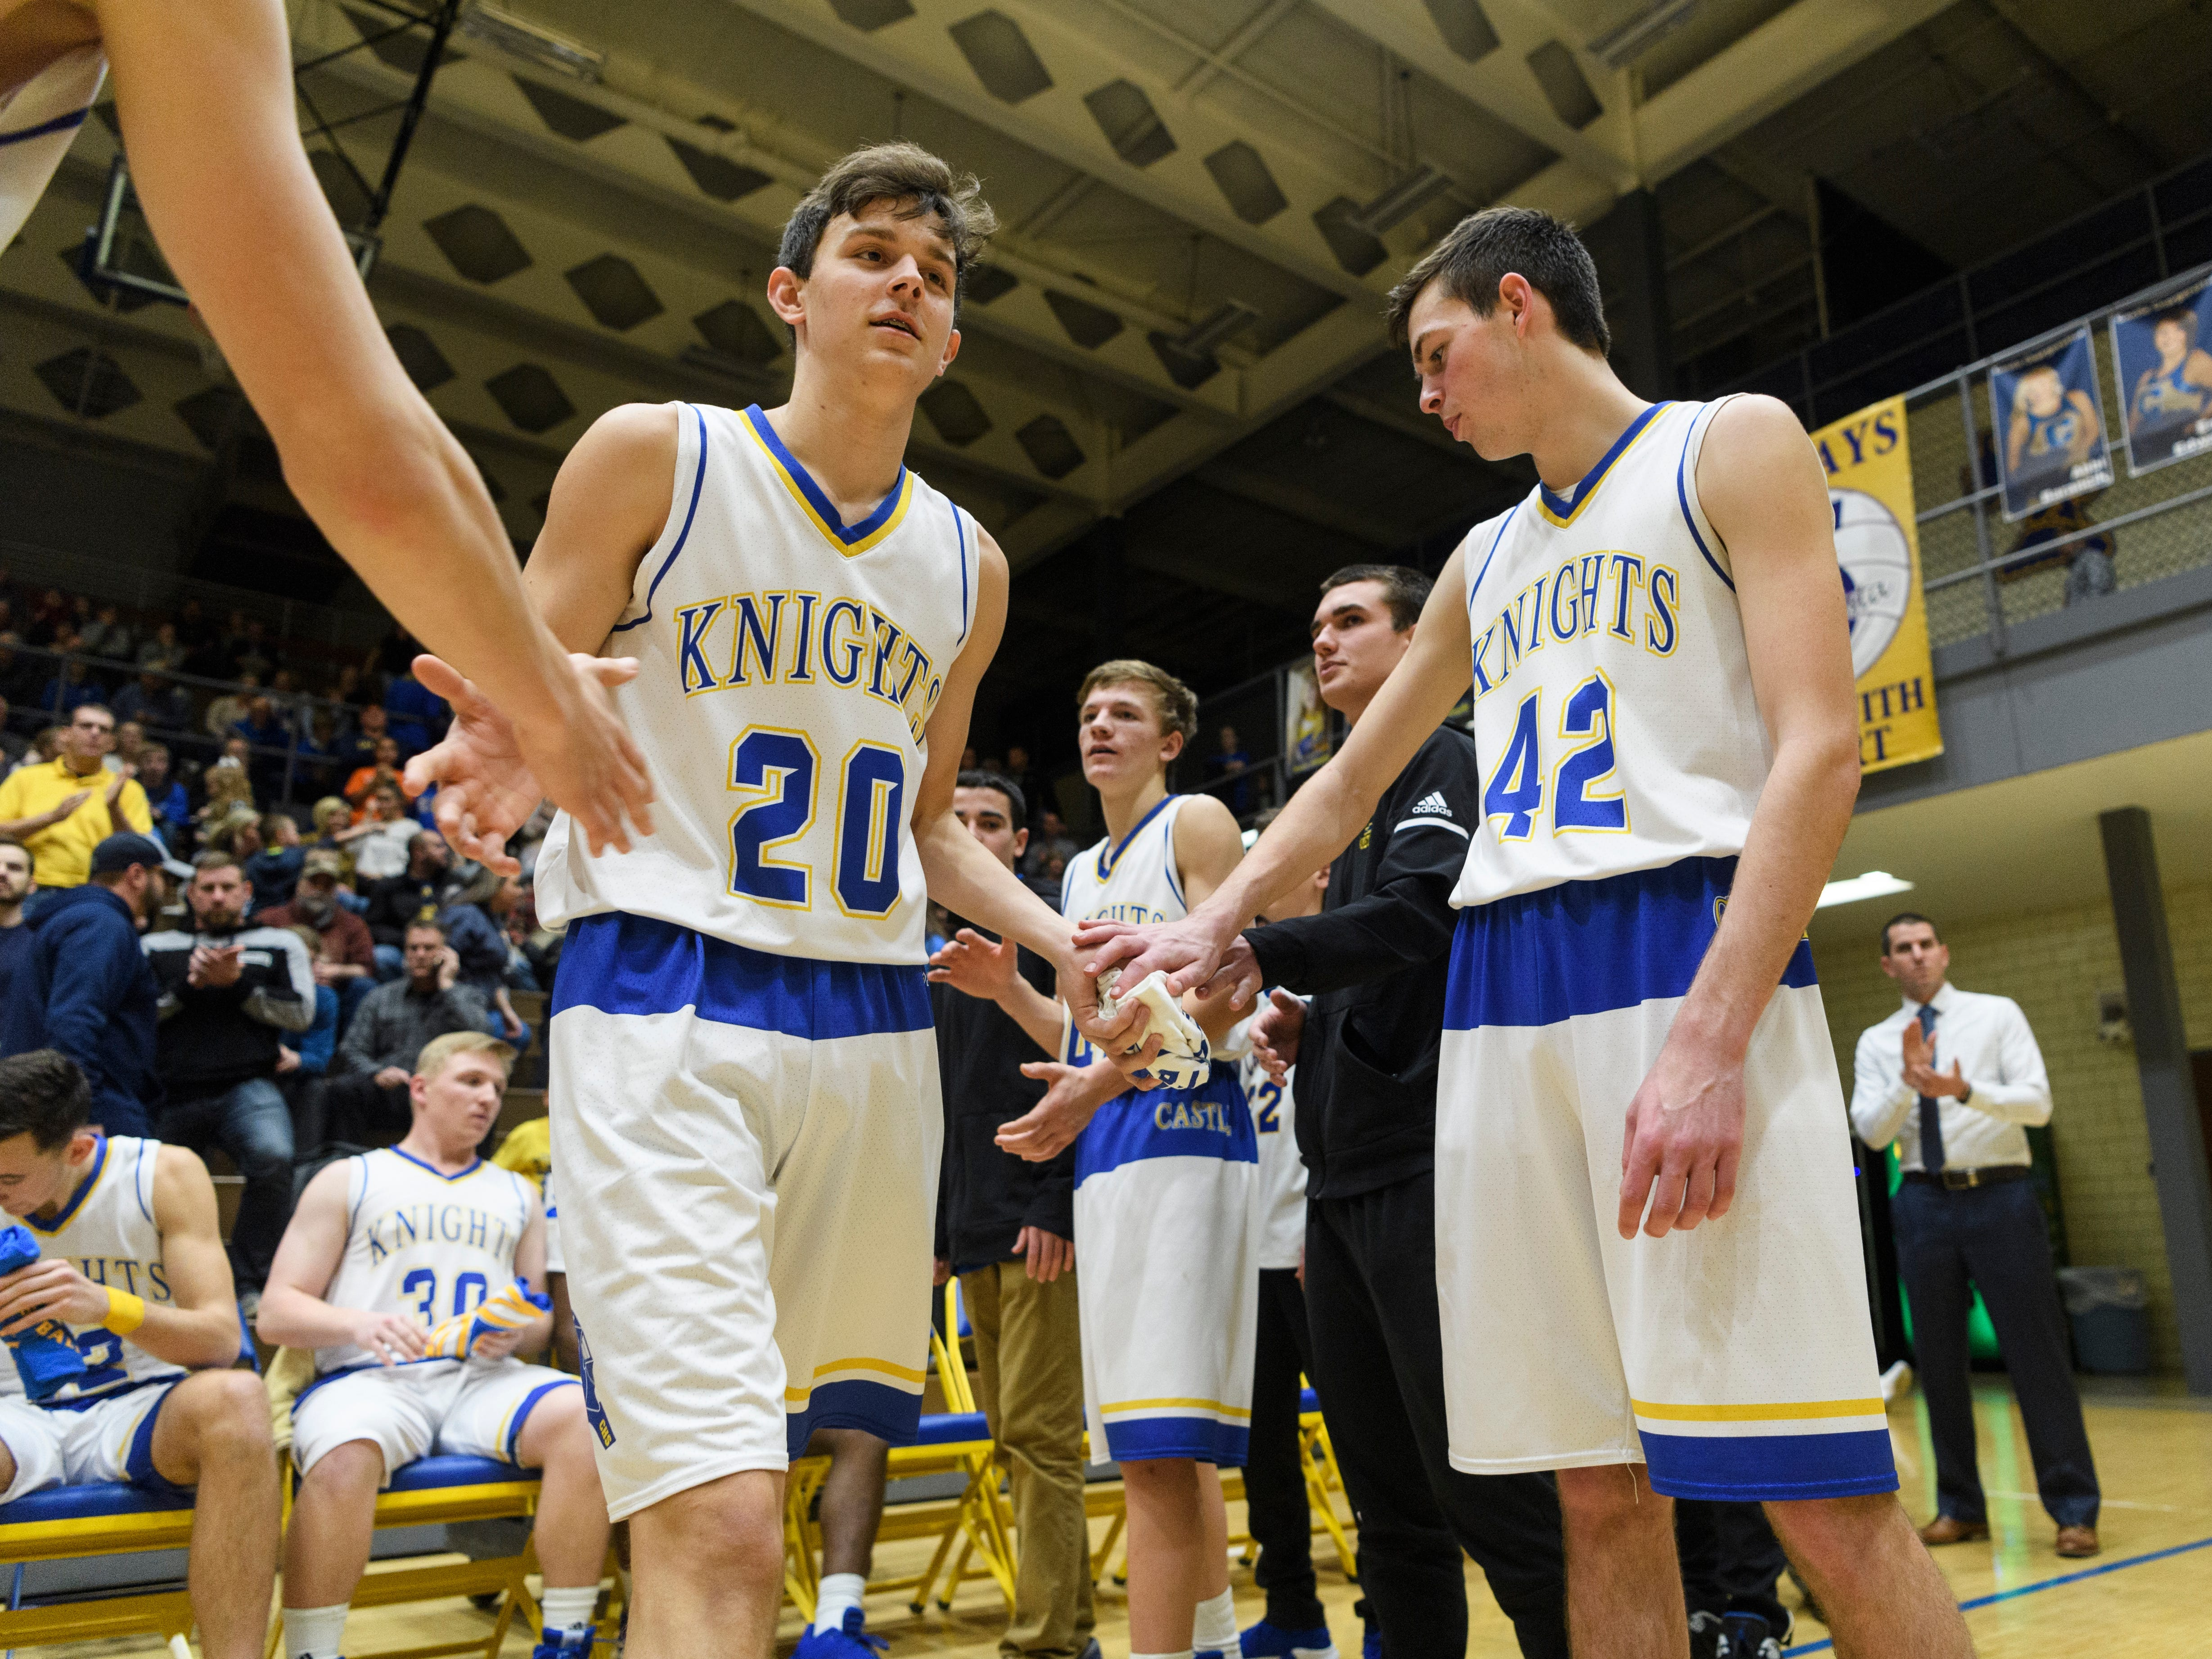 Castle's Bob Nunge (20) is announced as a starter before the game against the Memorial Tigers at Castle High School in Newburgh, Ind., Friday, Jan. 4, 2019. The Knights defeated the Tigers, 72-43.